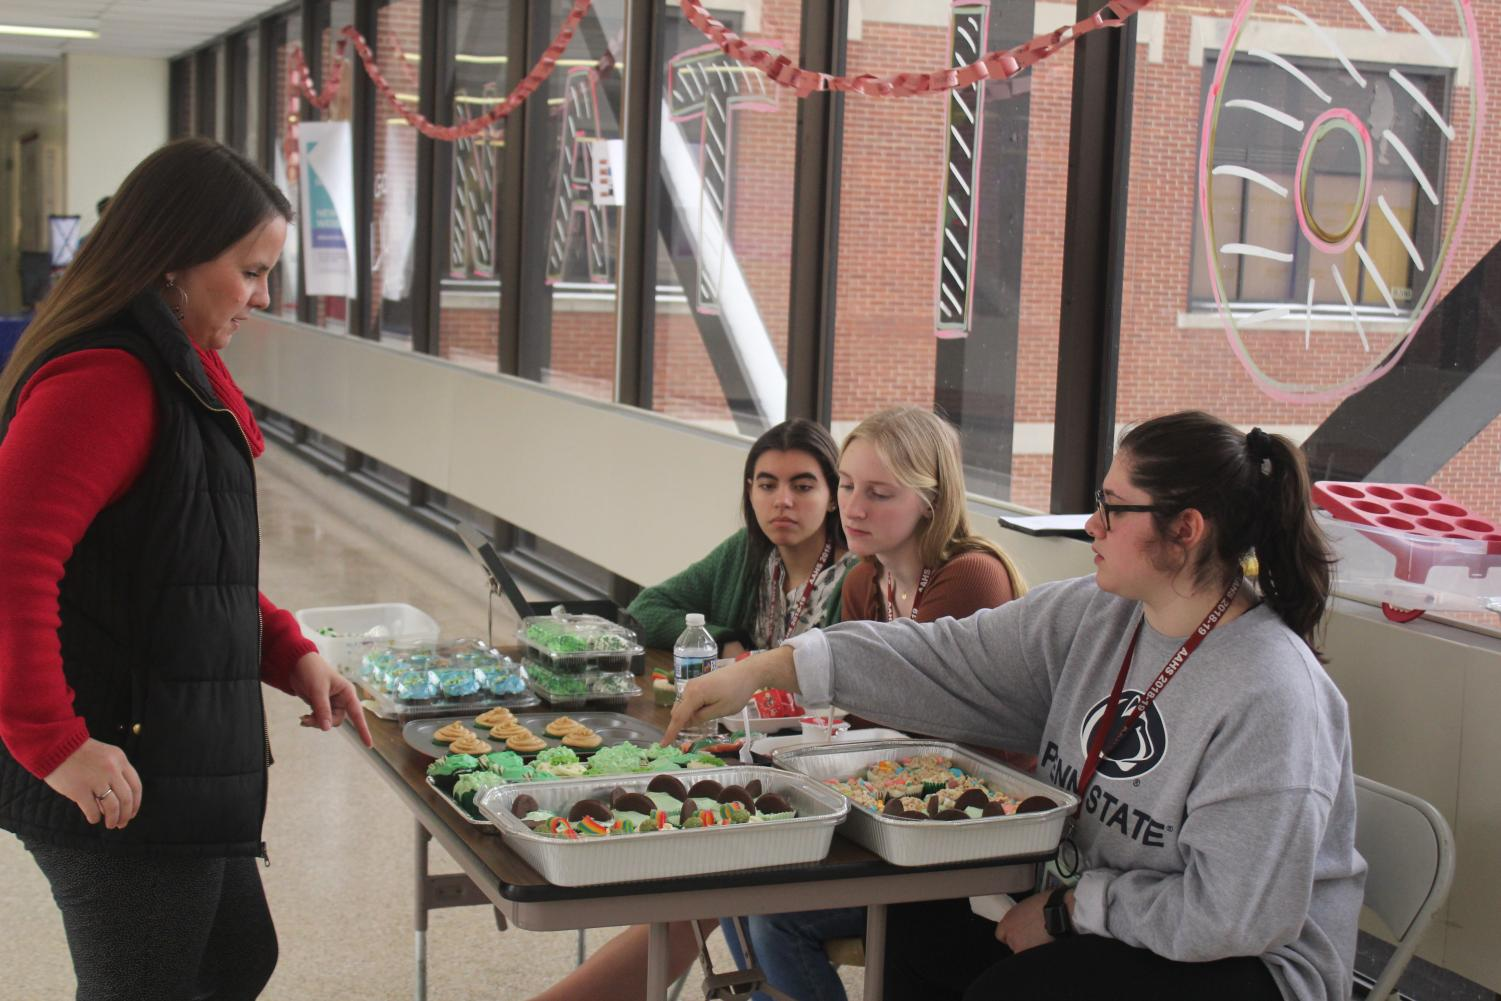 Seniors of last school year, Takera Jones, Bailie Newberry and Reagan Baker sell baked goods on the bridge for Girls' League. They sold their homemade baked goods to Emily Bender.